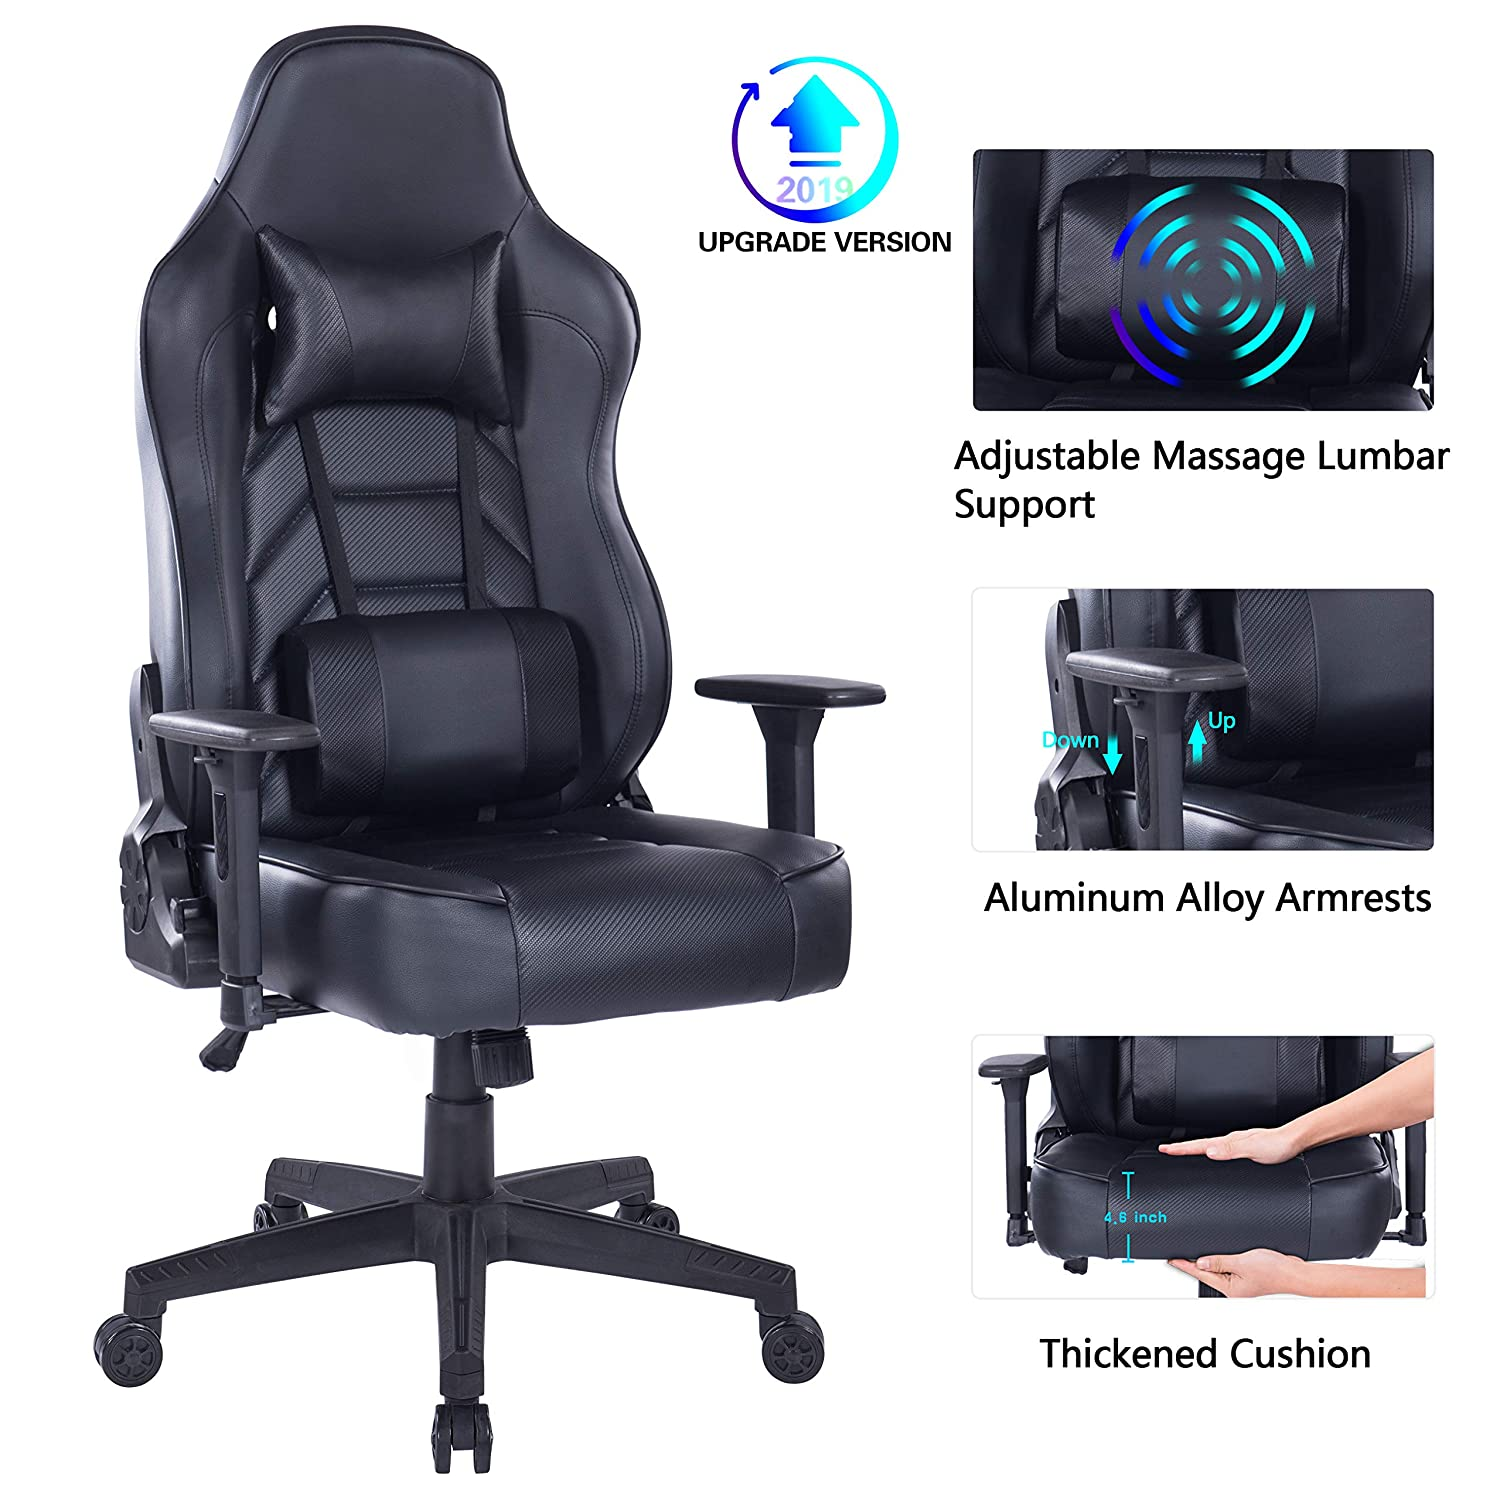 Blue Whale Gaming Chair with Massage Lumbar Pillow, PC Computer Video Game Racing Chair Reclining Executive Ergonomic Office Desk Chair with Headrest BW 291Black